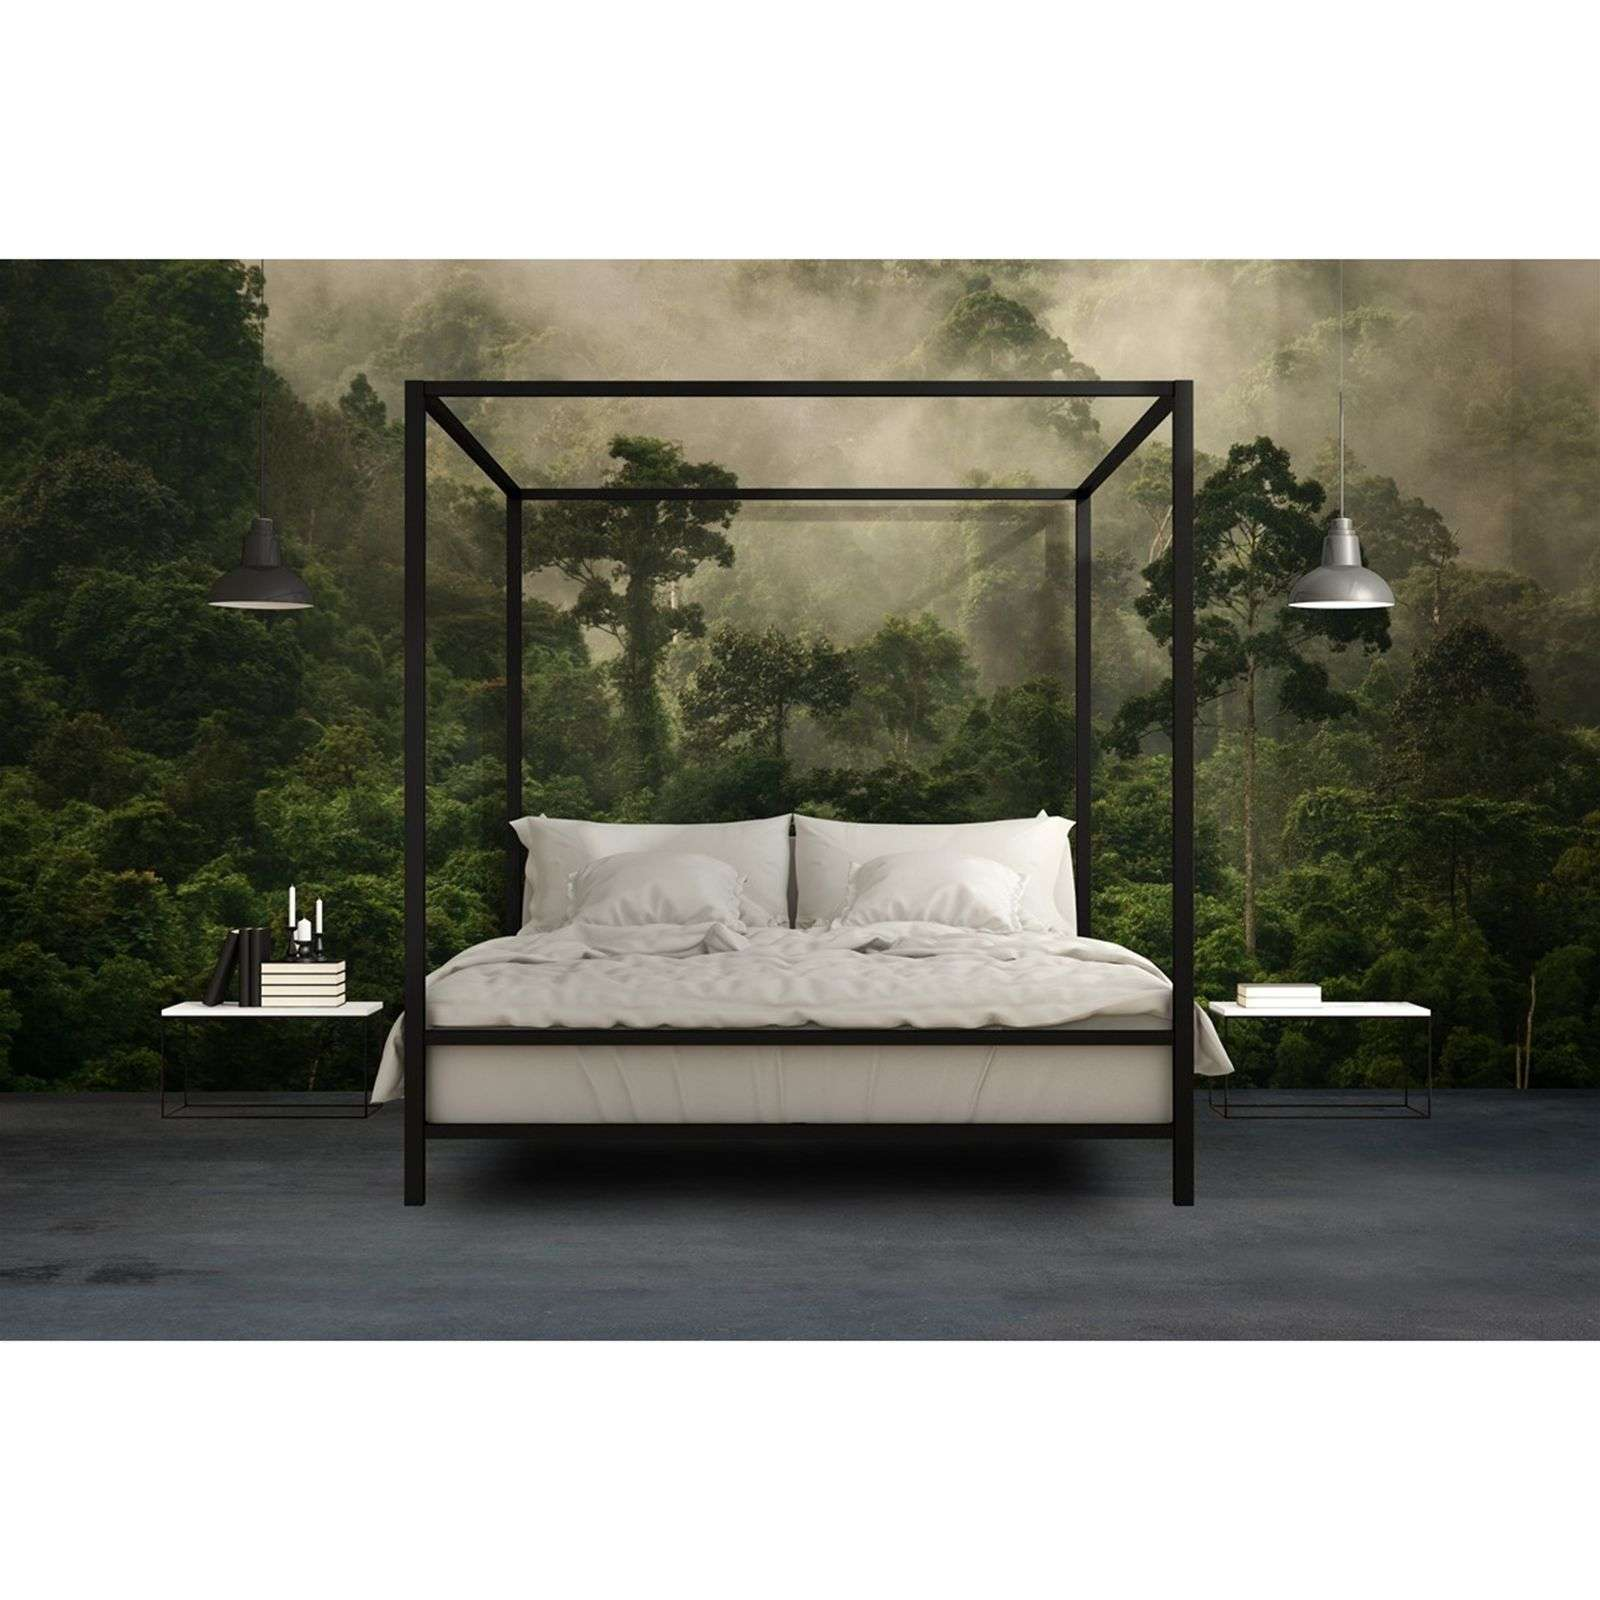 l papiers de ninon fabian l de papier peint vert. Black Bedroom Furniture Sets. Home Design Ideas